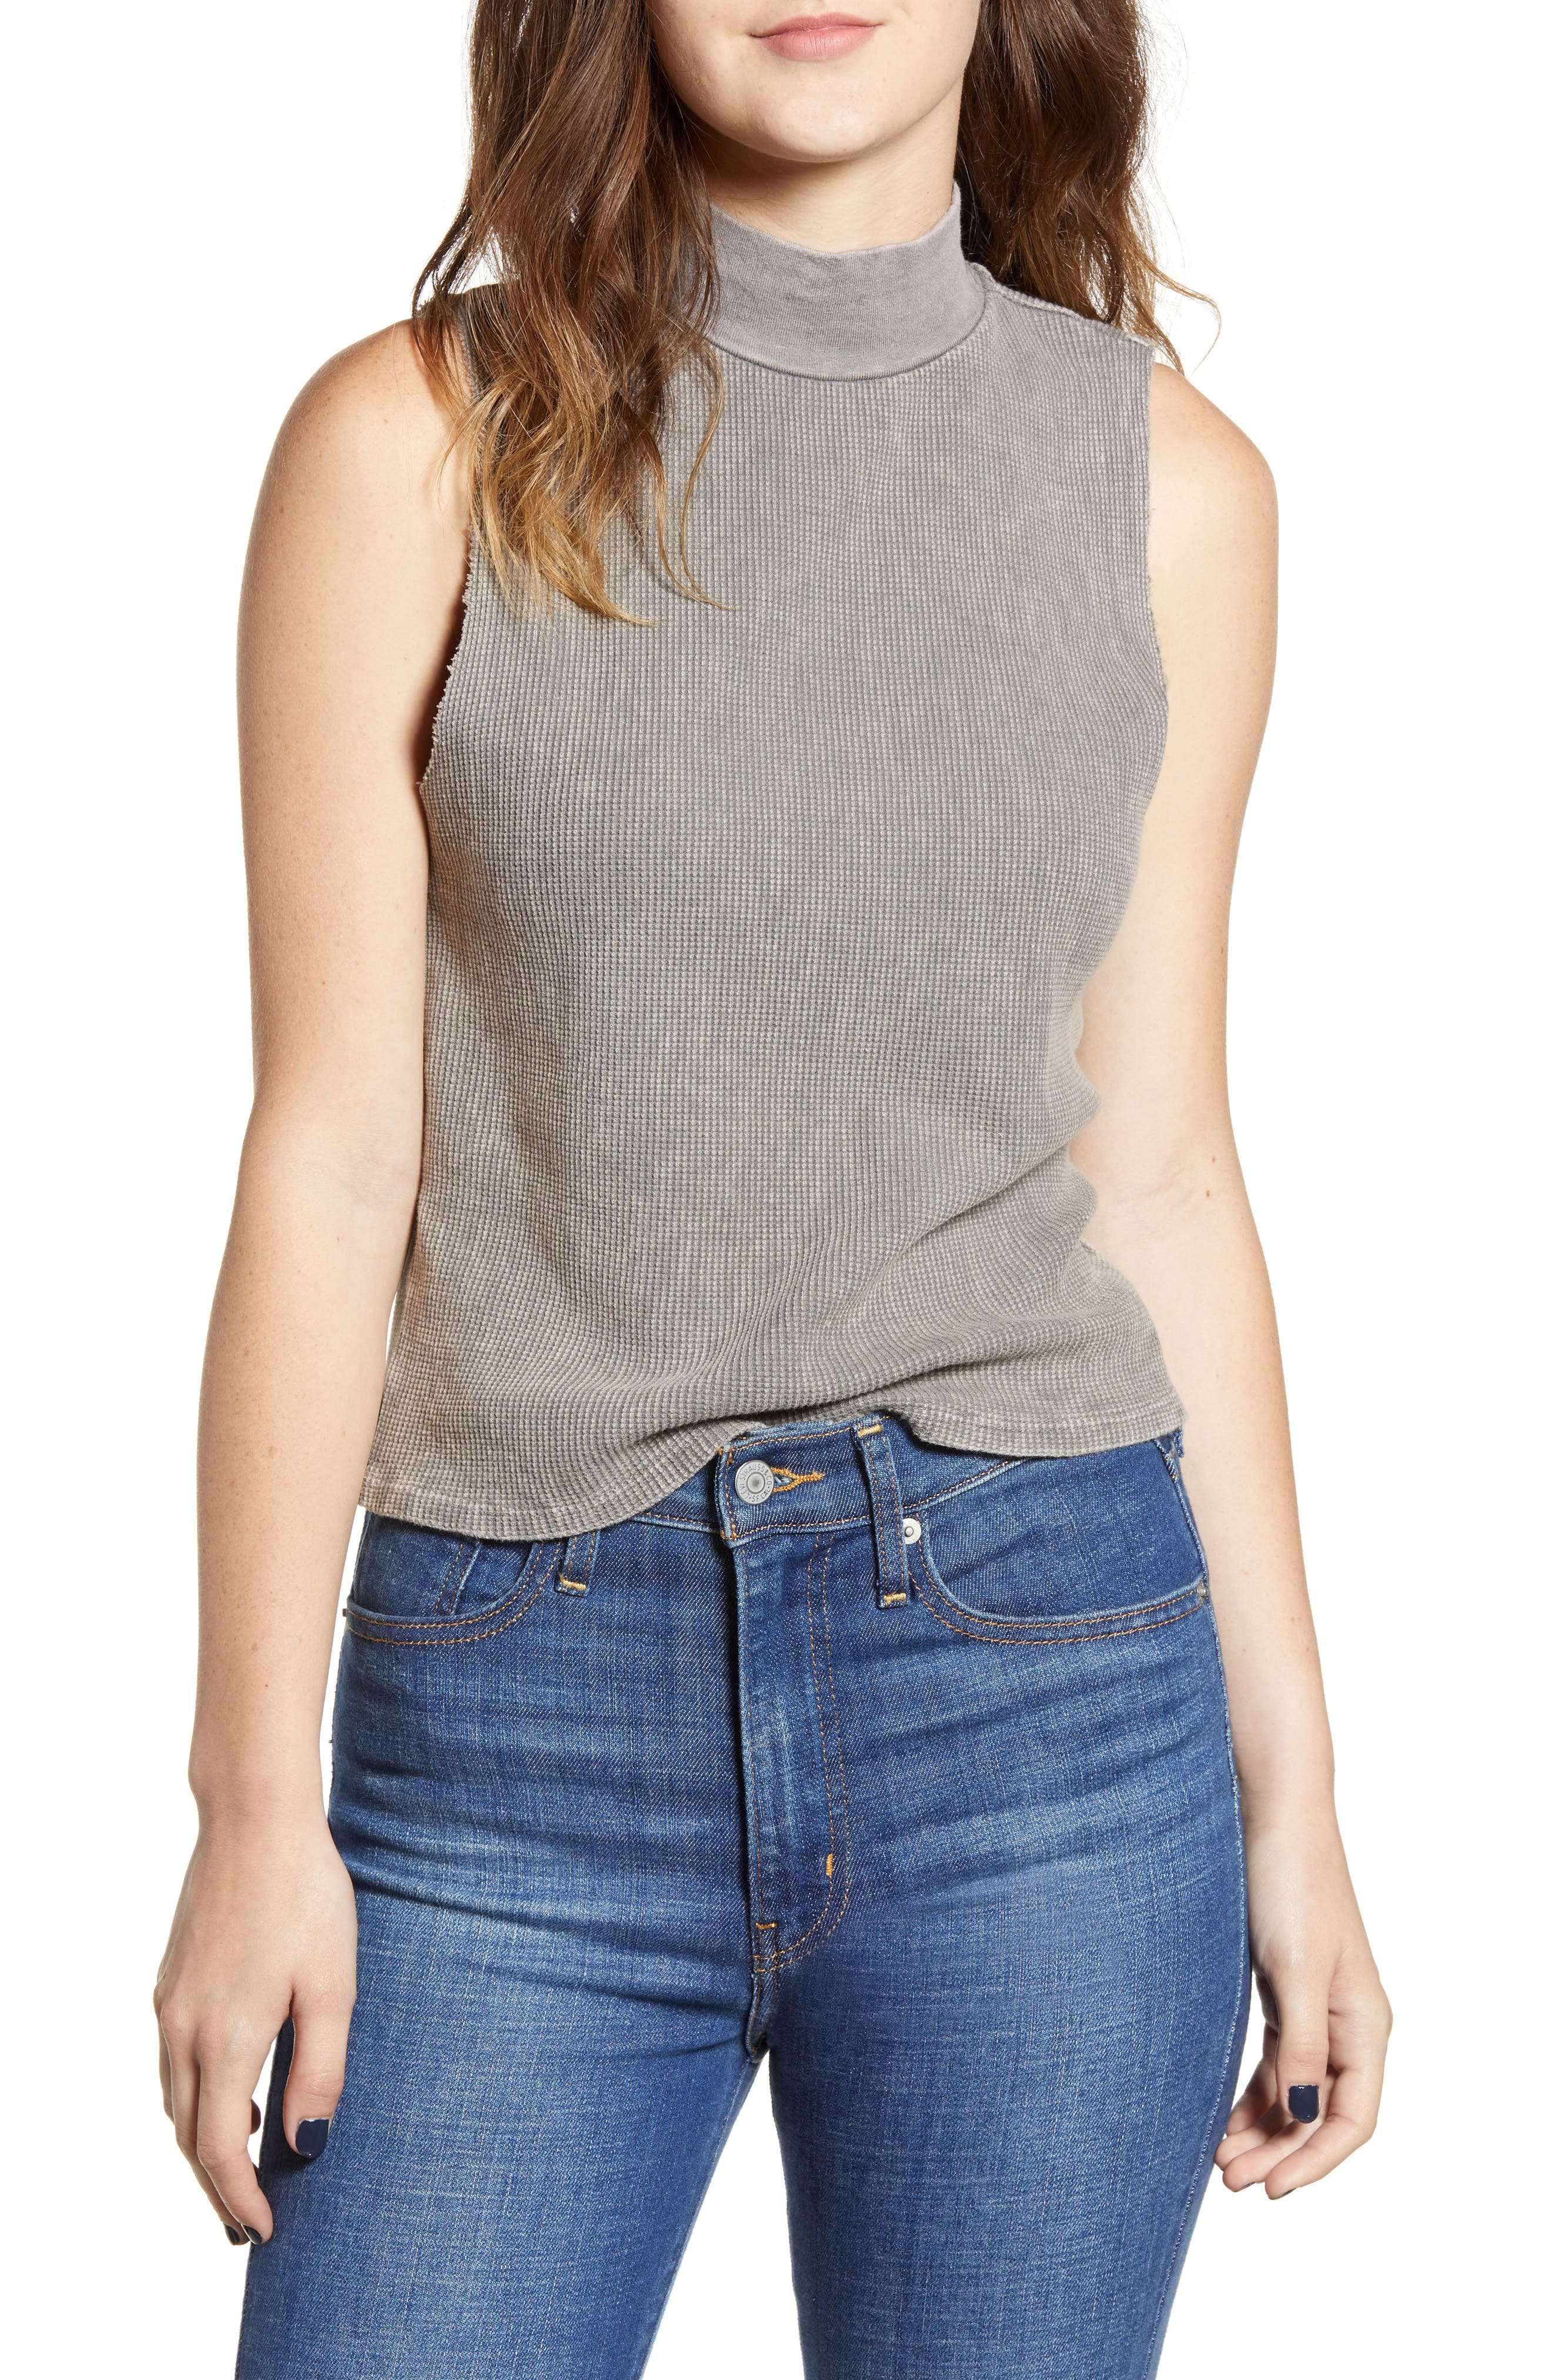 Annie Thermal Sleeveless Mock Neck Top,                             Main thumbnail 1, color,                             014